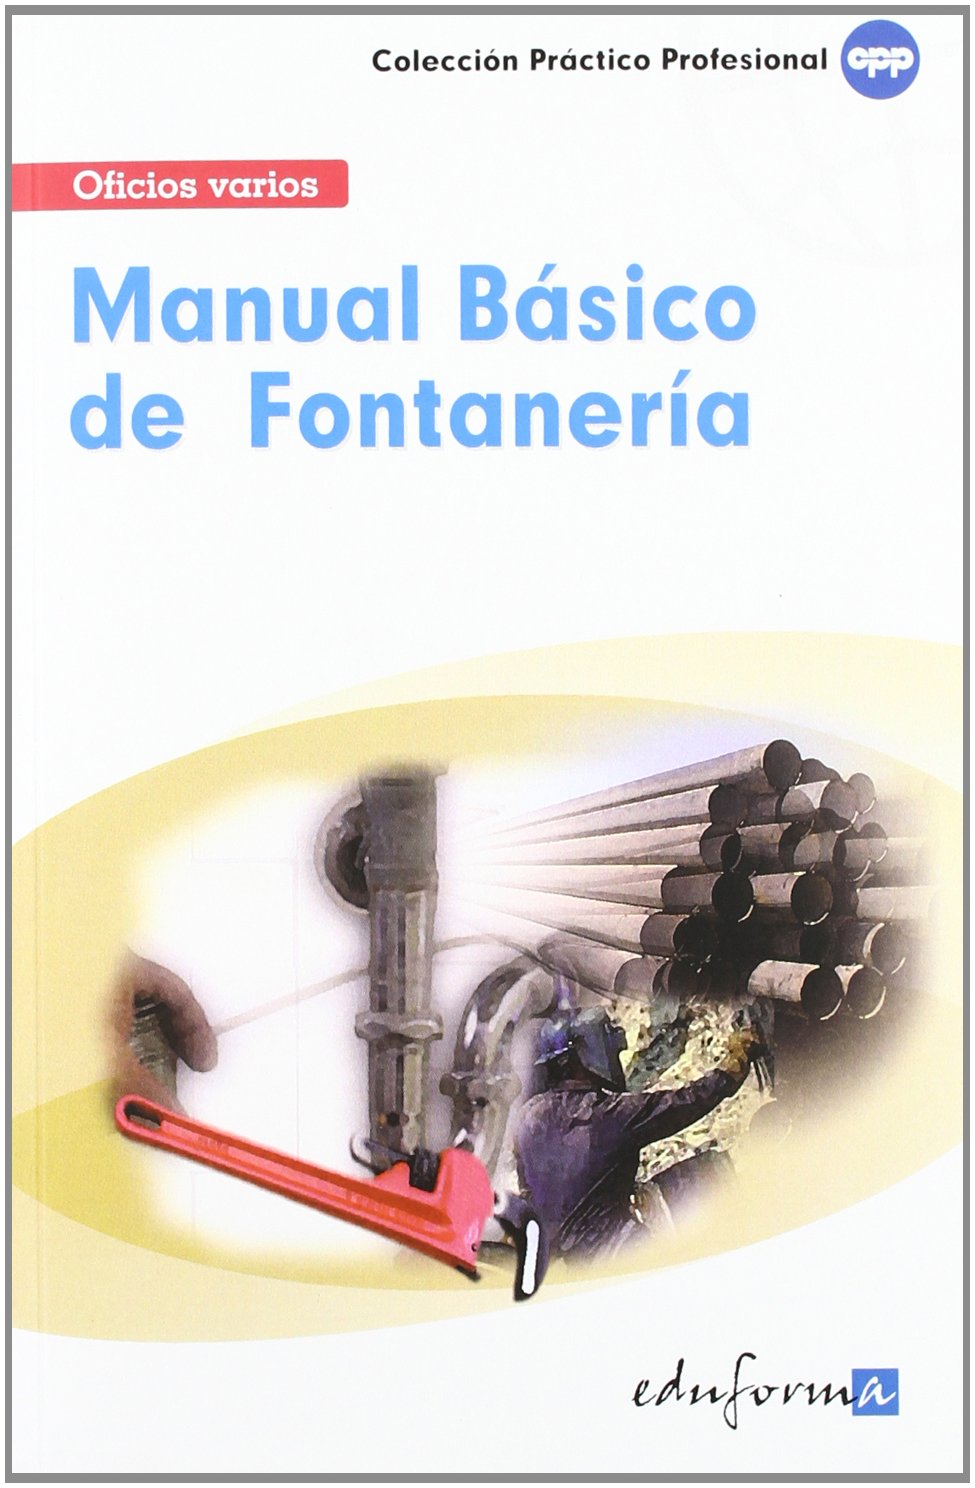 Manual Básico de Fontanería (Spanish Edition): Jose Antonio Vega Alvarez: 9788466556583: Amazon.com: Books